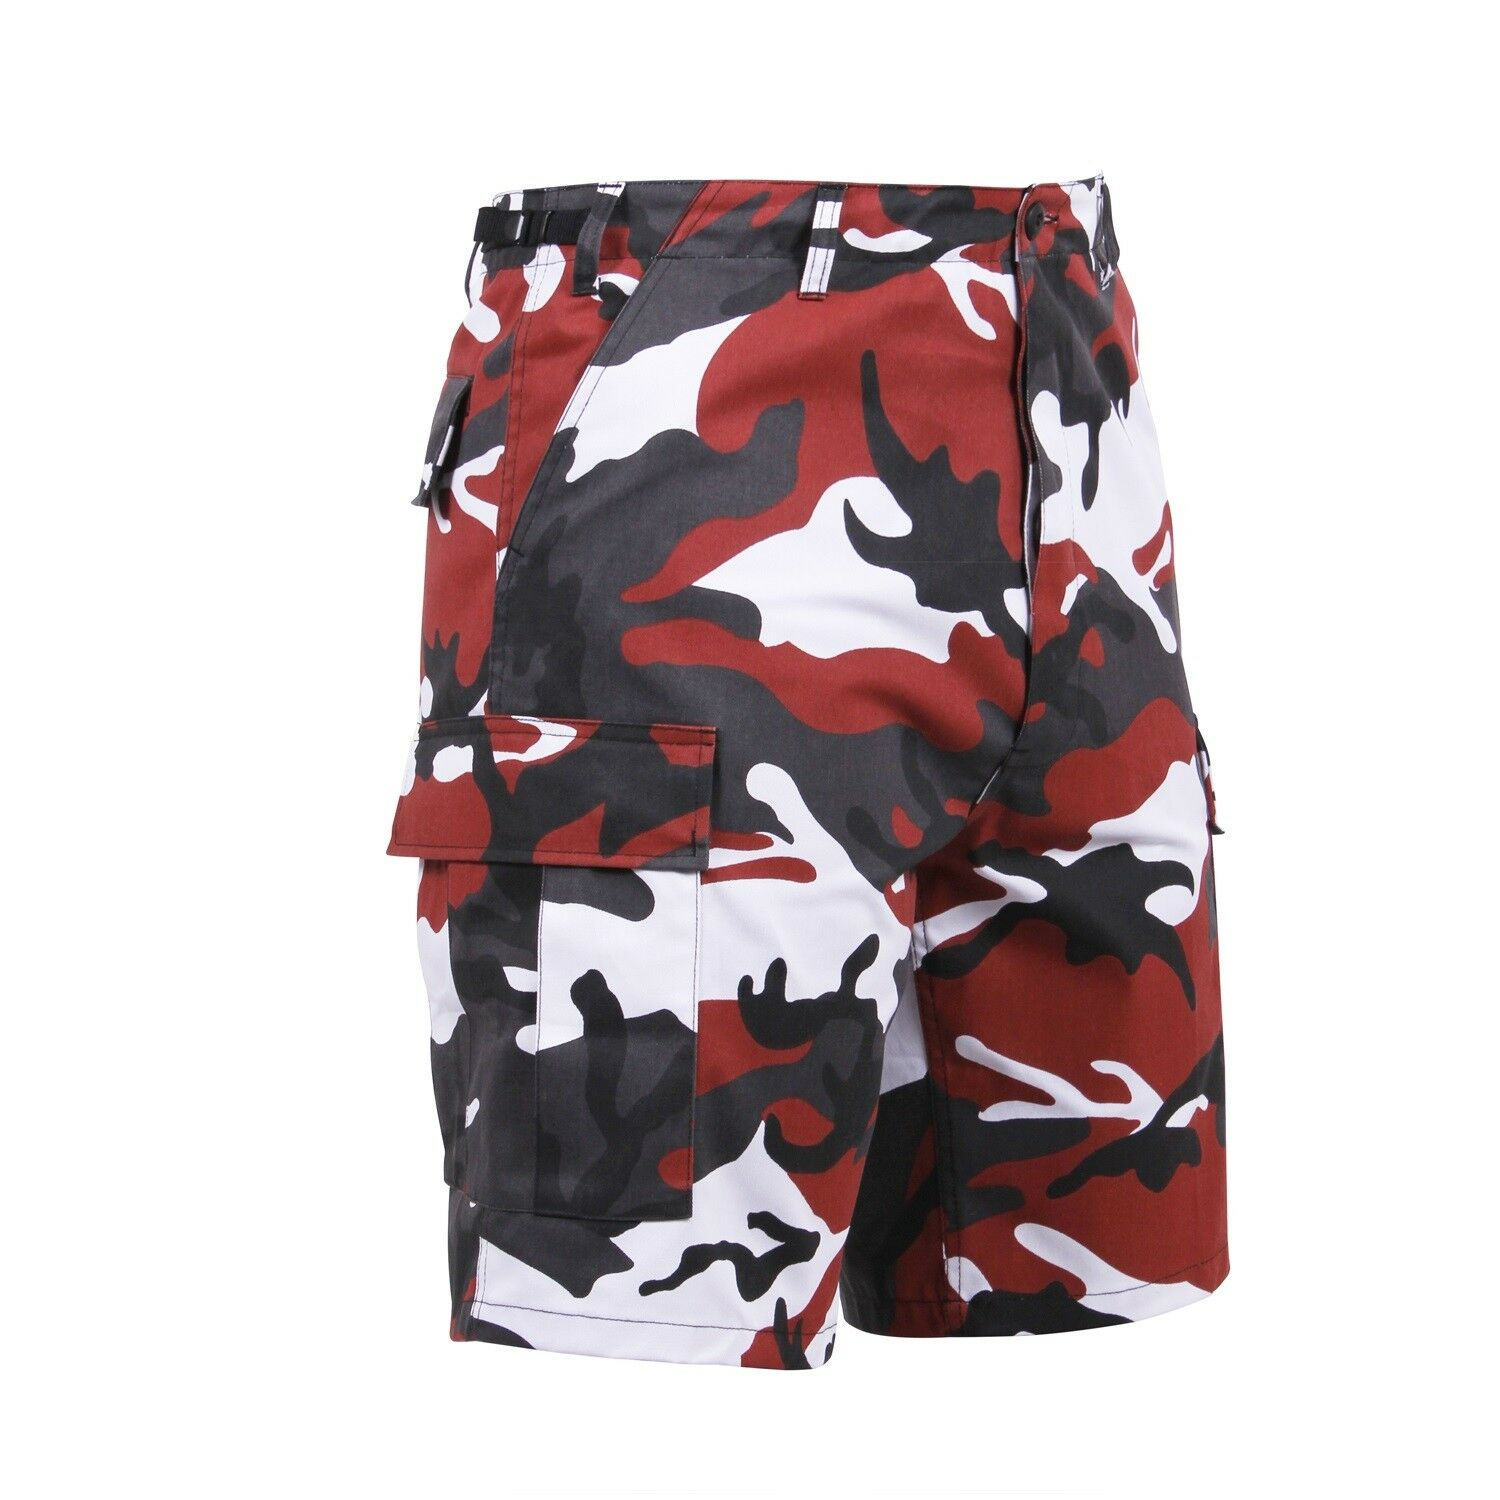 SHORTS BDU ARMY CARGO MILITARY Red Camo CAMOUFLAGE XS,S,M,L,XL,2XL,3XL